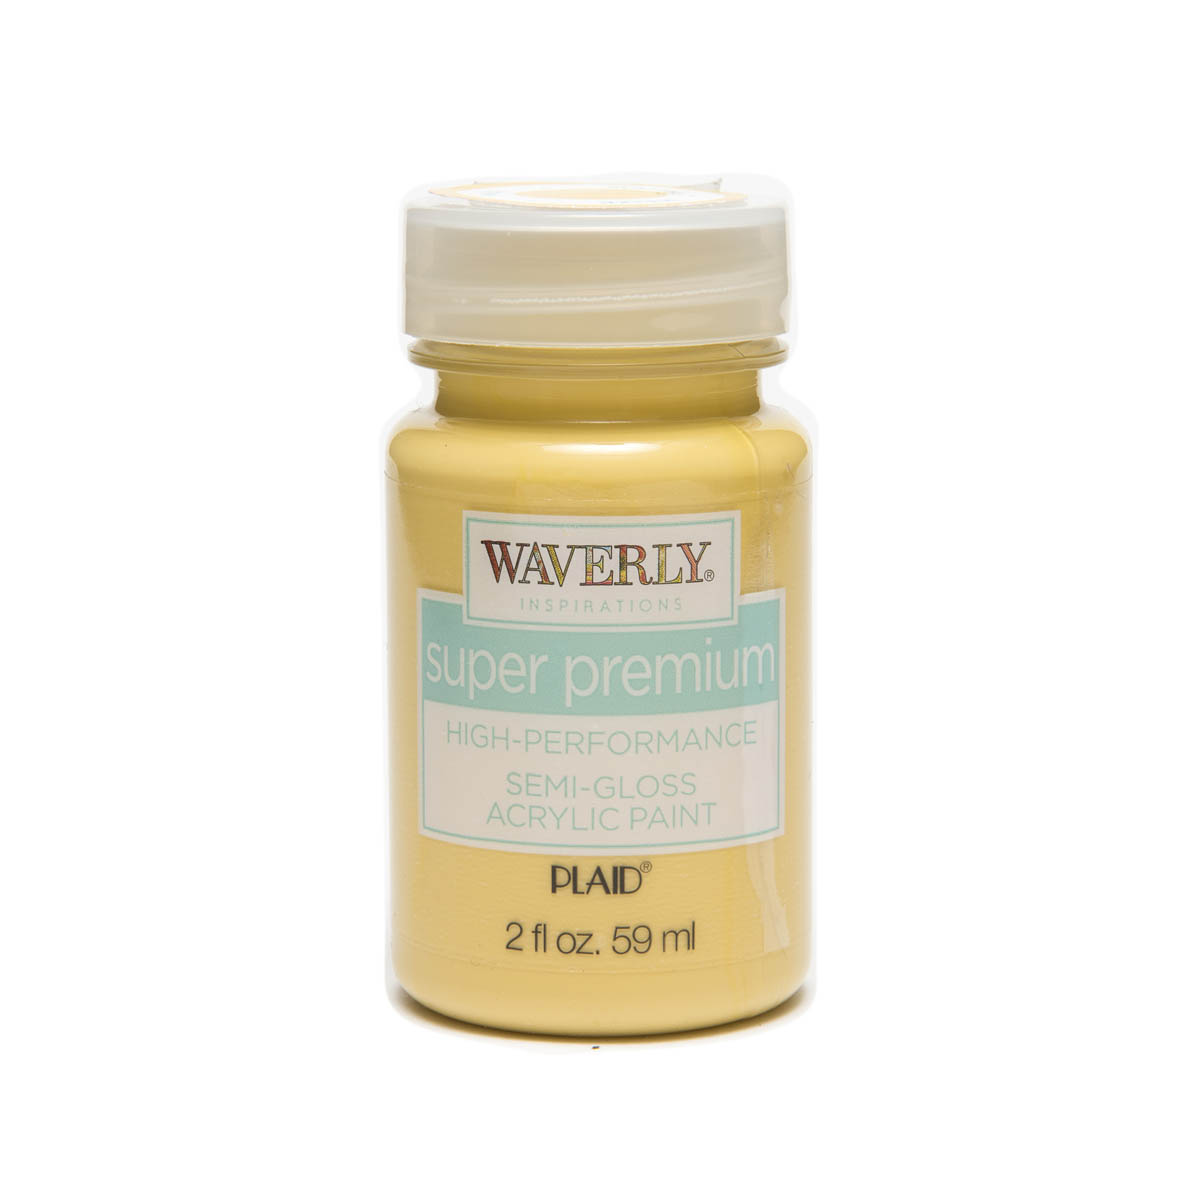 Waverly ® Inspirations Super Premium Semi-Gloss Acrylic Paint - Maize, 2 oz. - 60622E